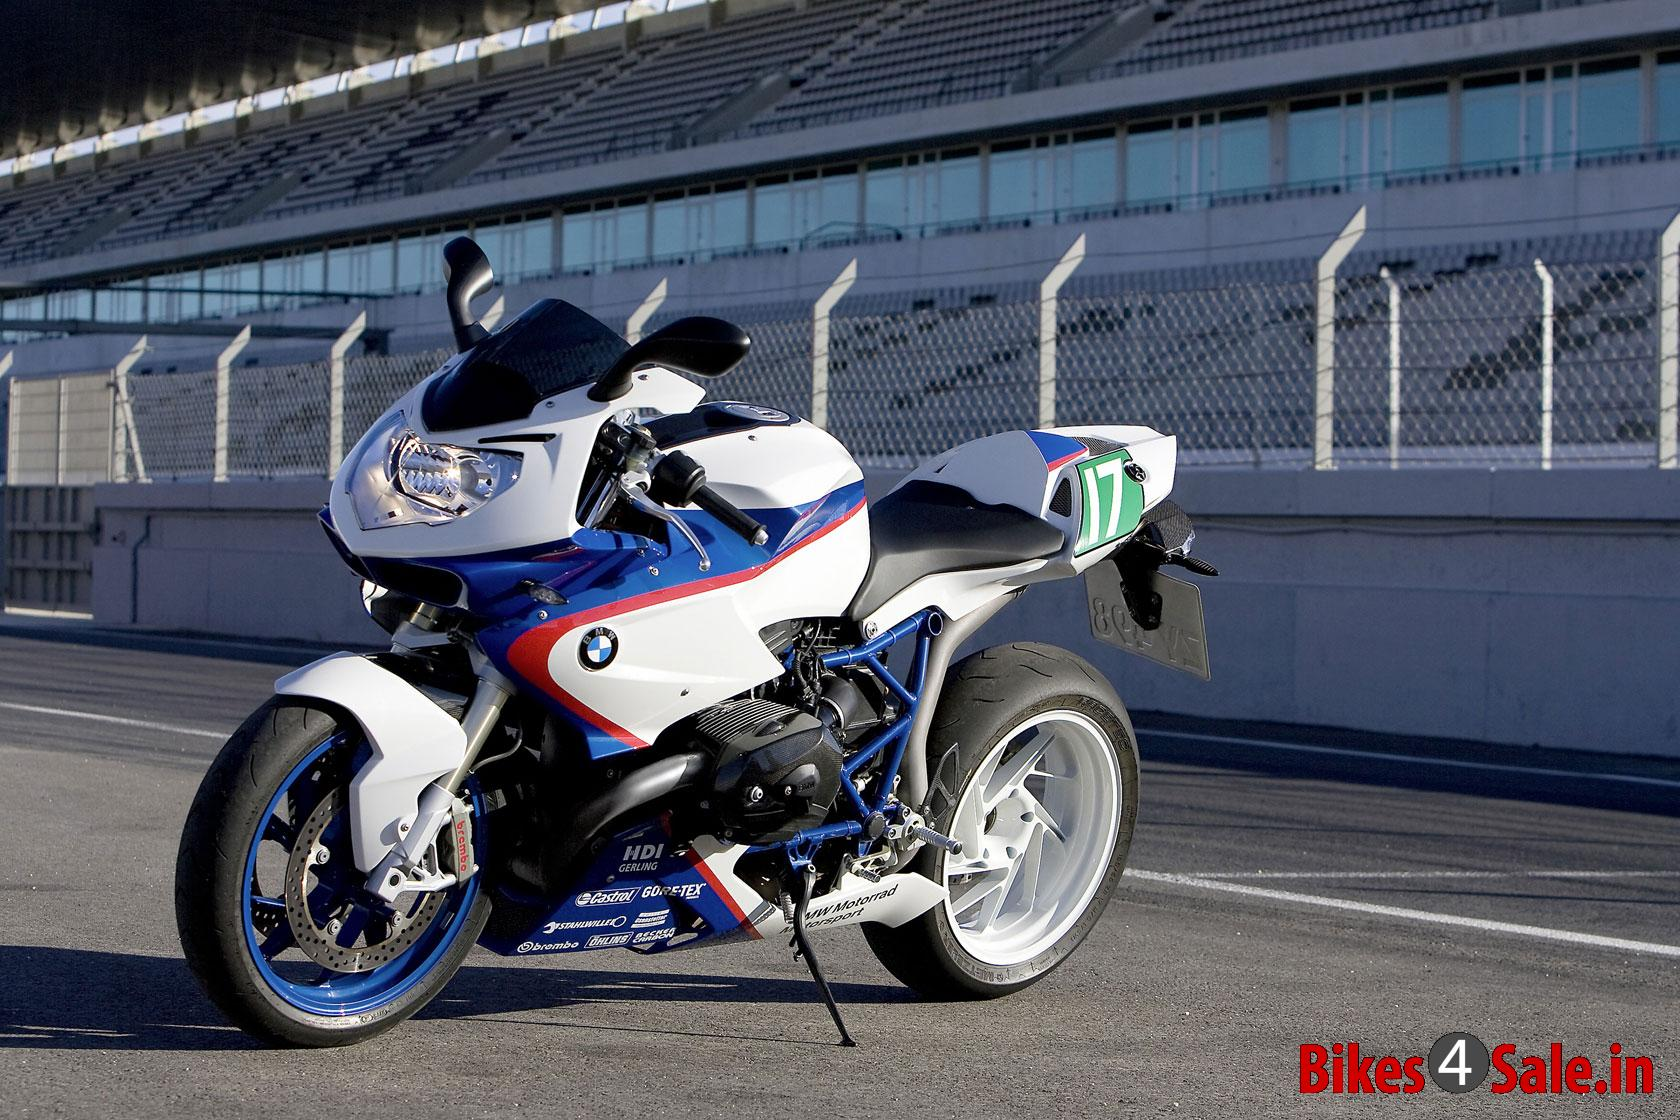 bmw hp2 sport motorcycle picture gallery - bikes4sale